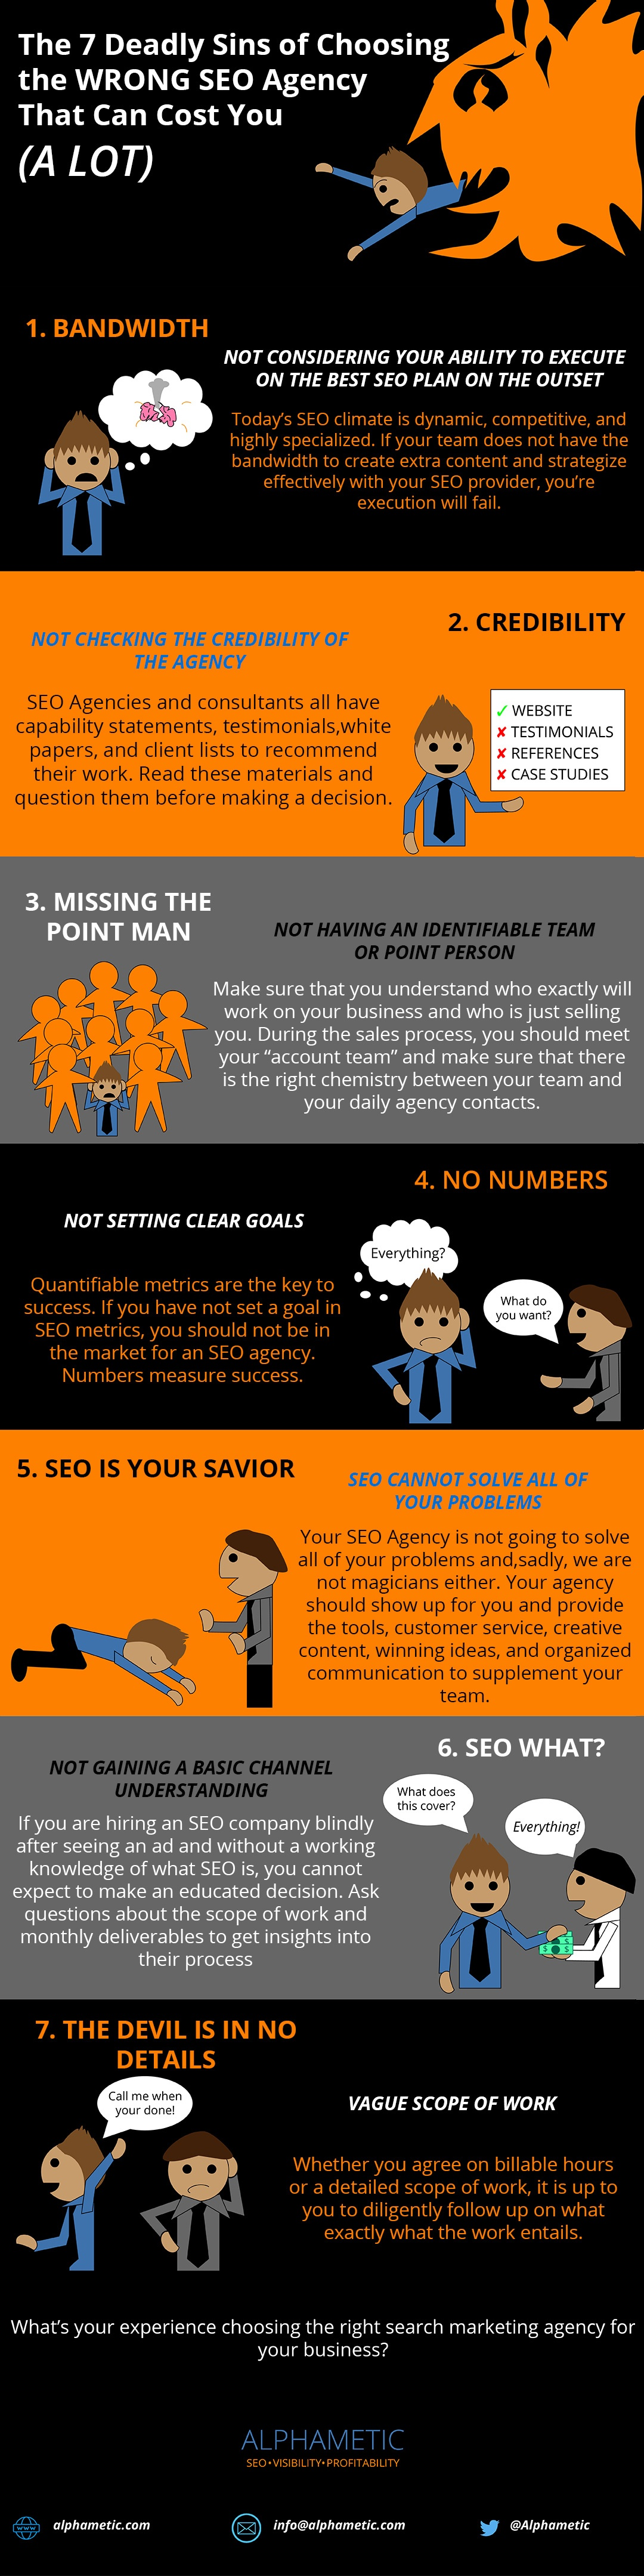 choosing seo agency infographic alphametic